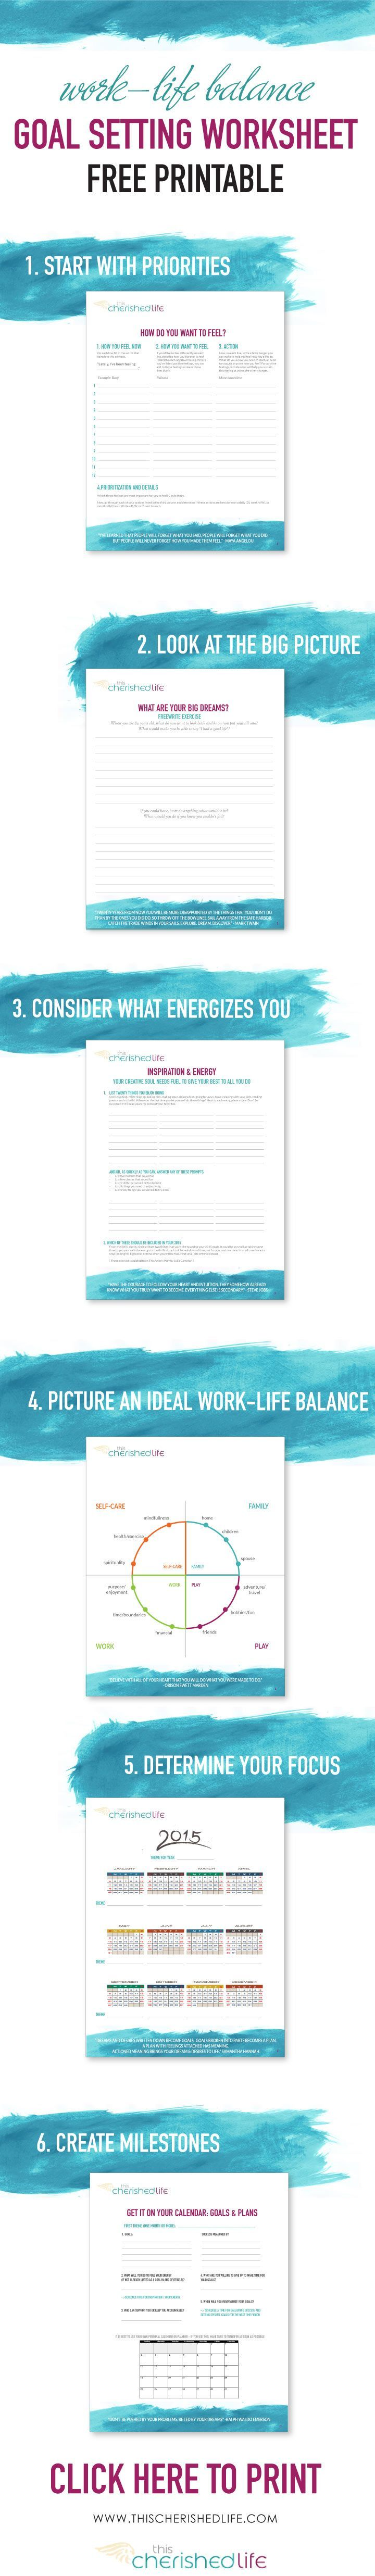 FREE 2015 goal setting printable worksheet - Set goals that matter for work life balance especially for busy moms setting goals, goal setting #goals #motivation